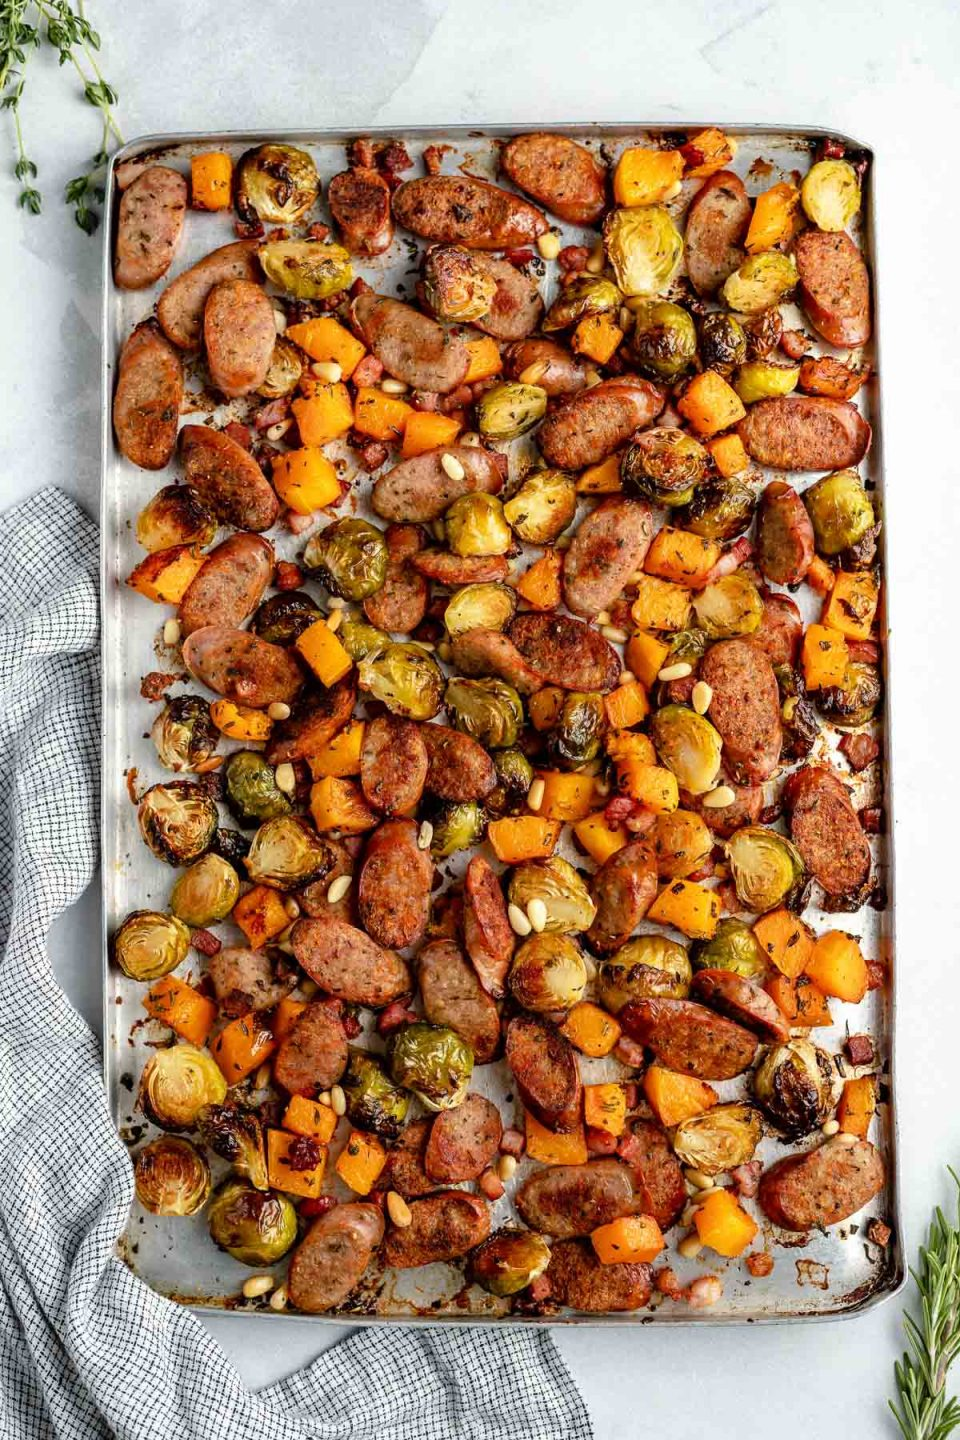 Sheet pan chicken sausage & vegetables. Thinly sliced chicken sausage, diced butternut squash, & halved brussels sprouts are browned & roasty on a large sheet pan. The chicken sausage sheet pan sits atop a light blue surface with a striped linen napkin.